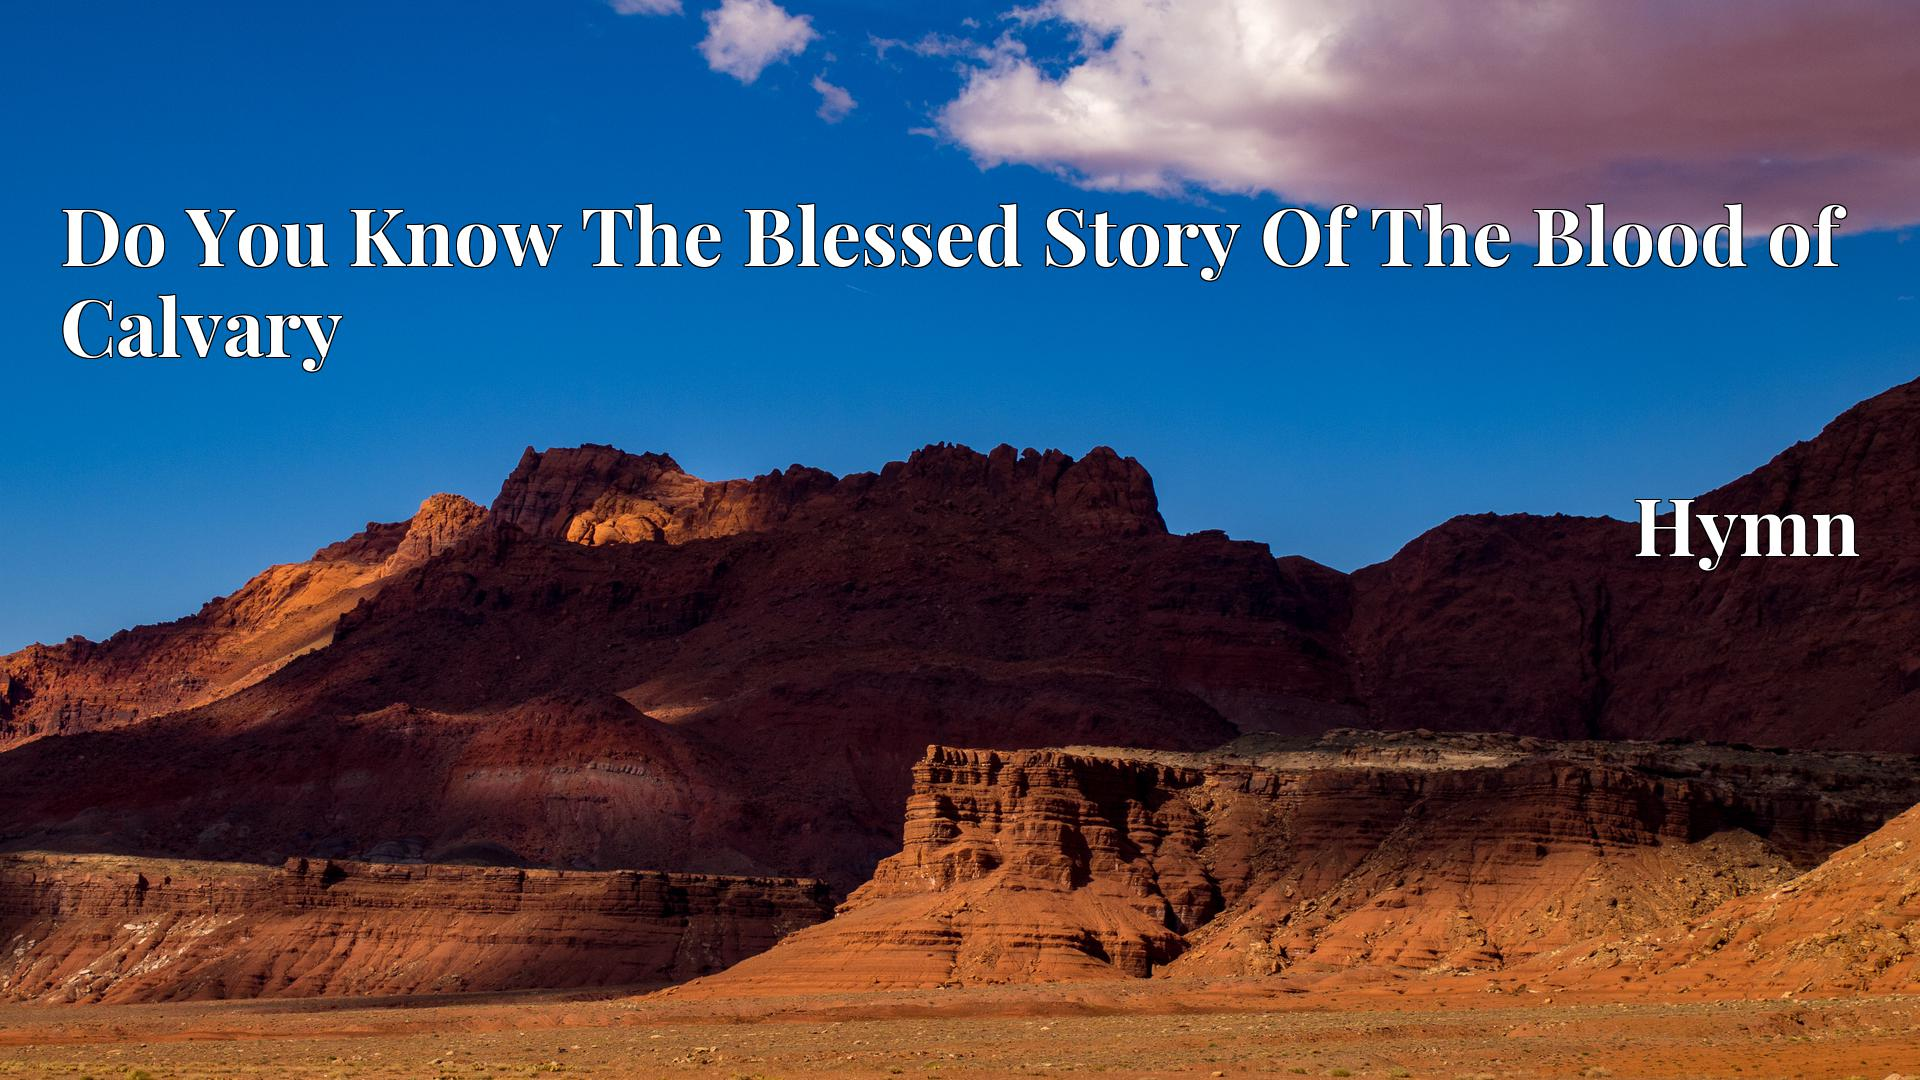 Do You Know The Blessed Story Of The Blood of Calvary - Hymn